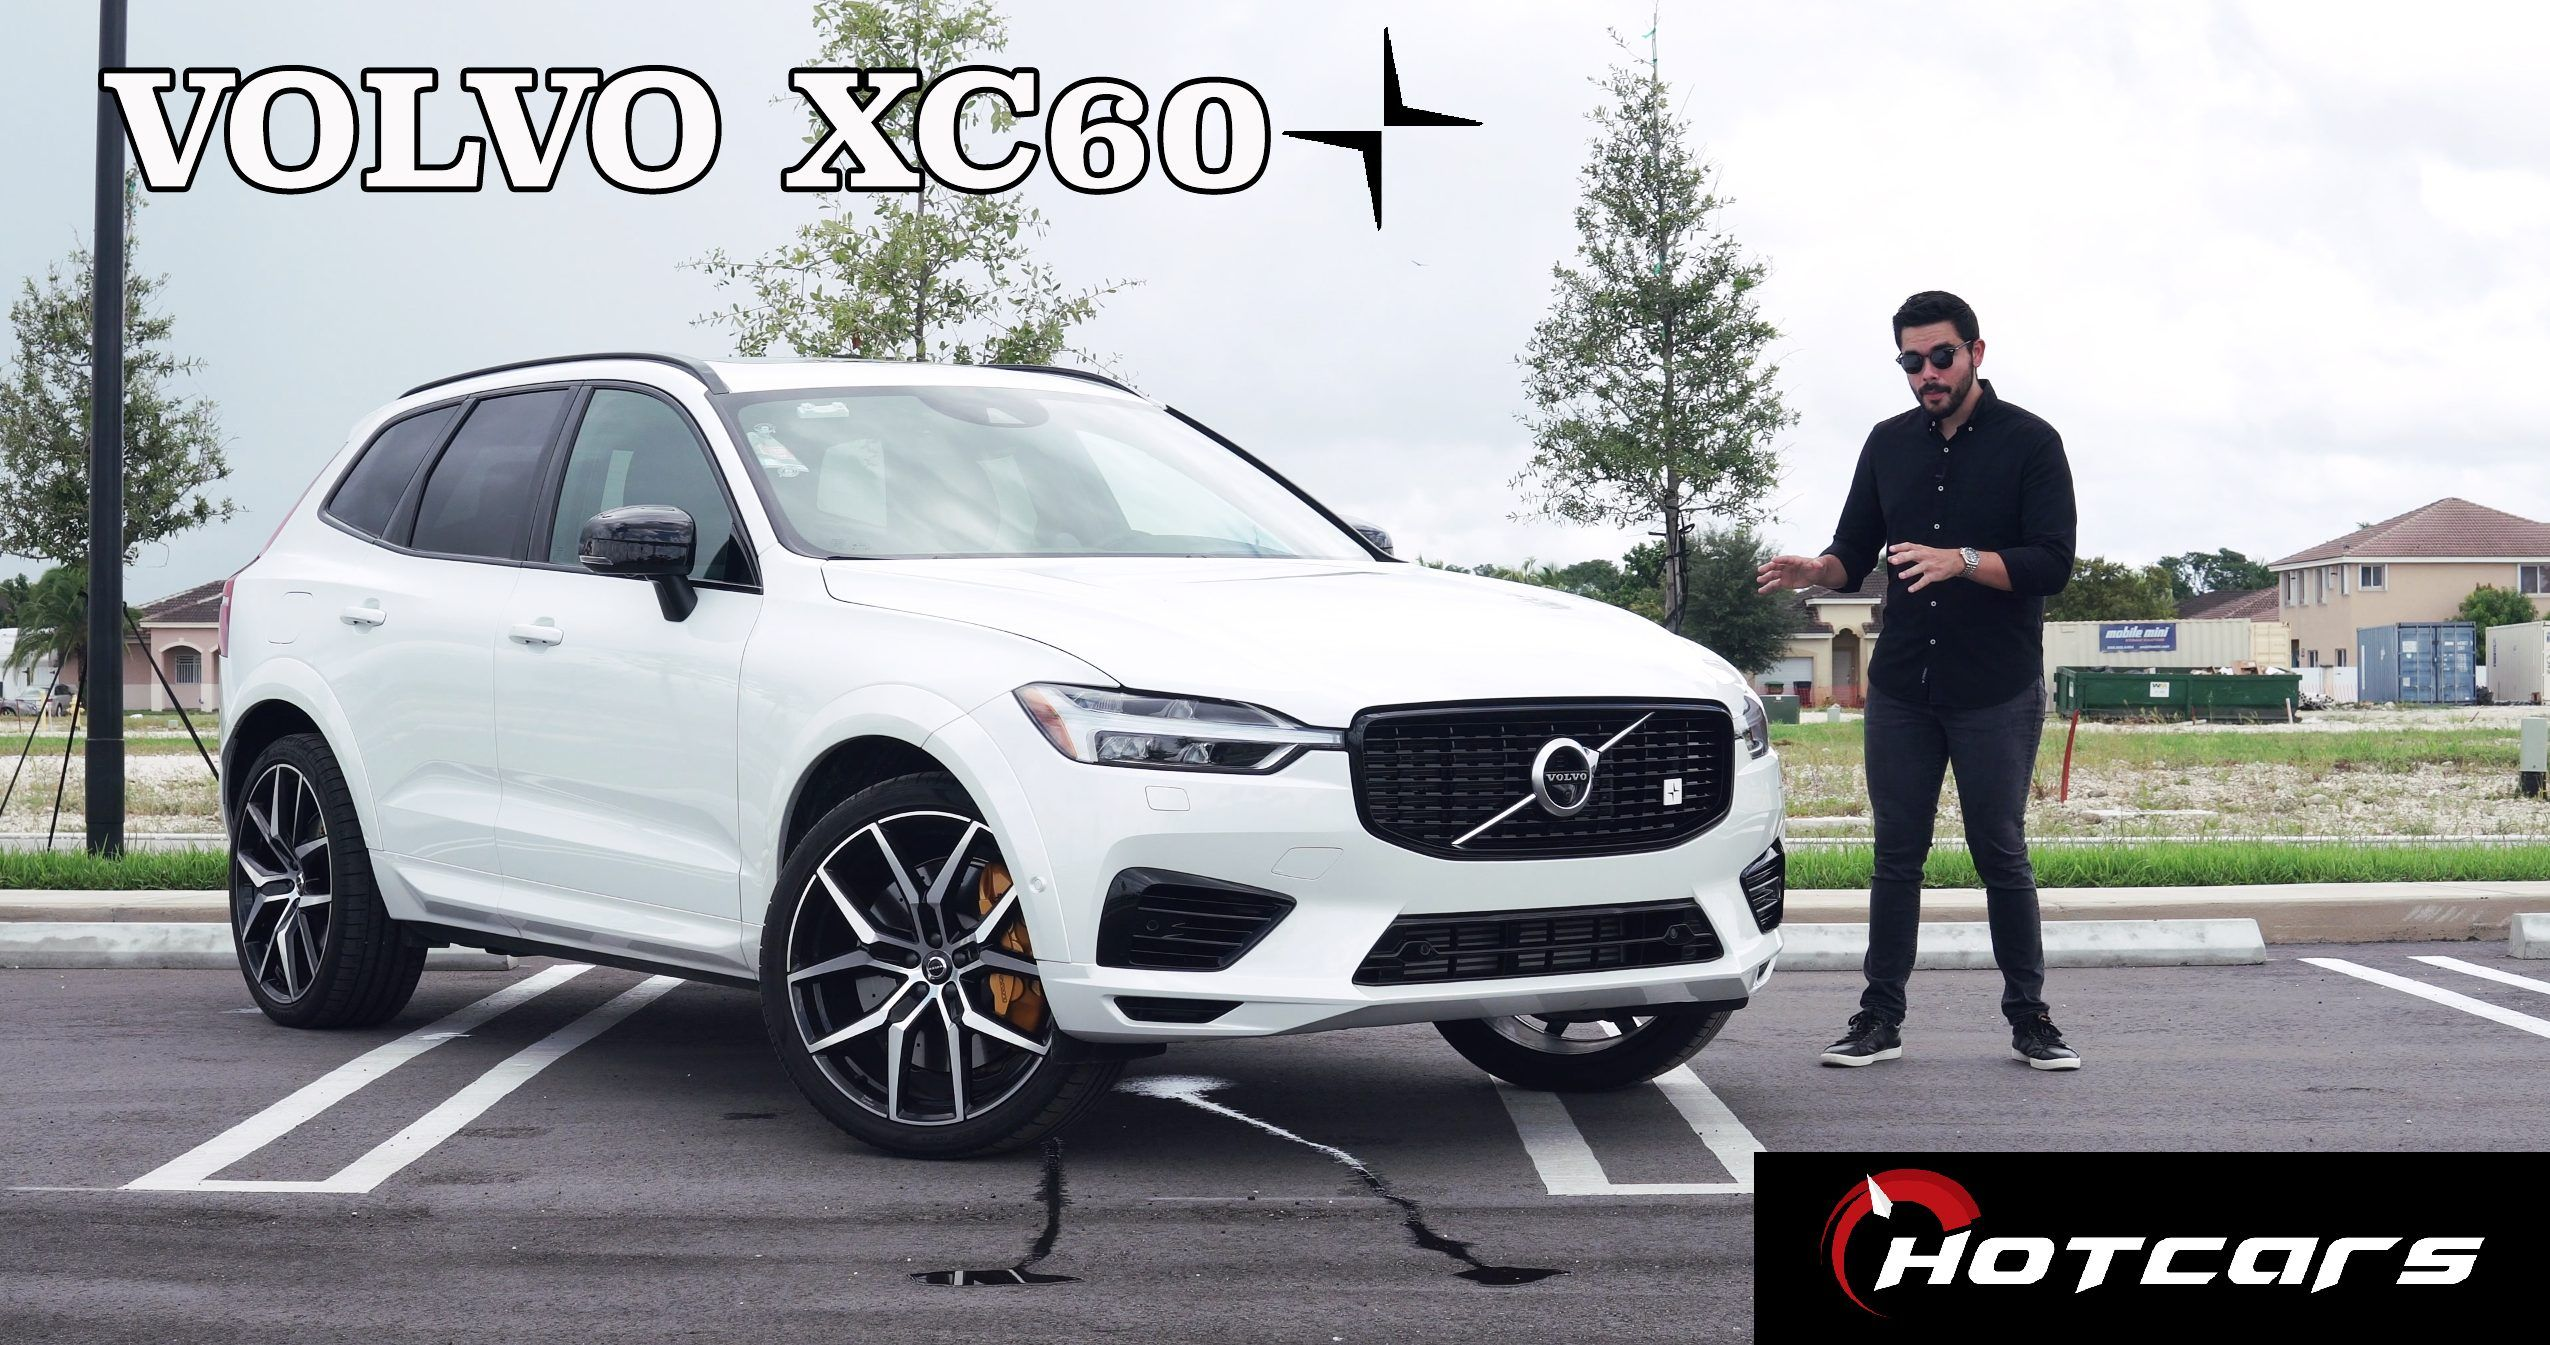 2020 Volvo XC60 Polestar Engineered Review: Plug-In Hybrid Performance Designed For Fun